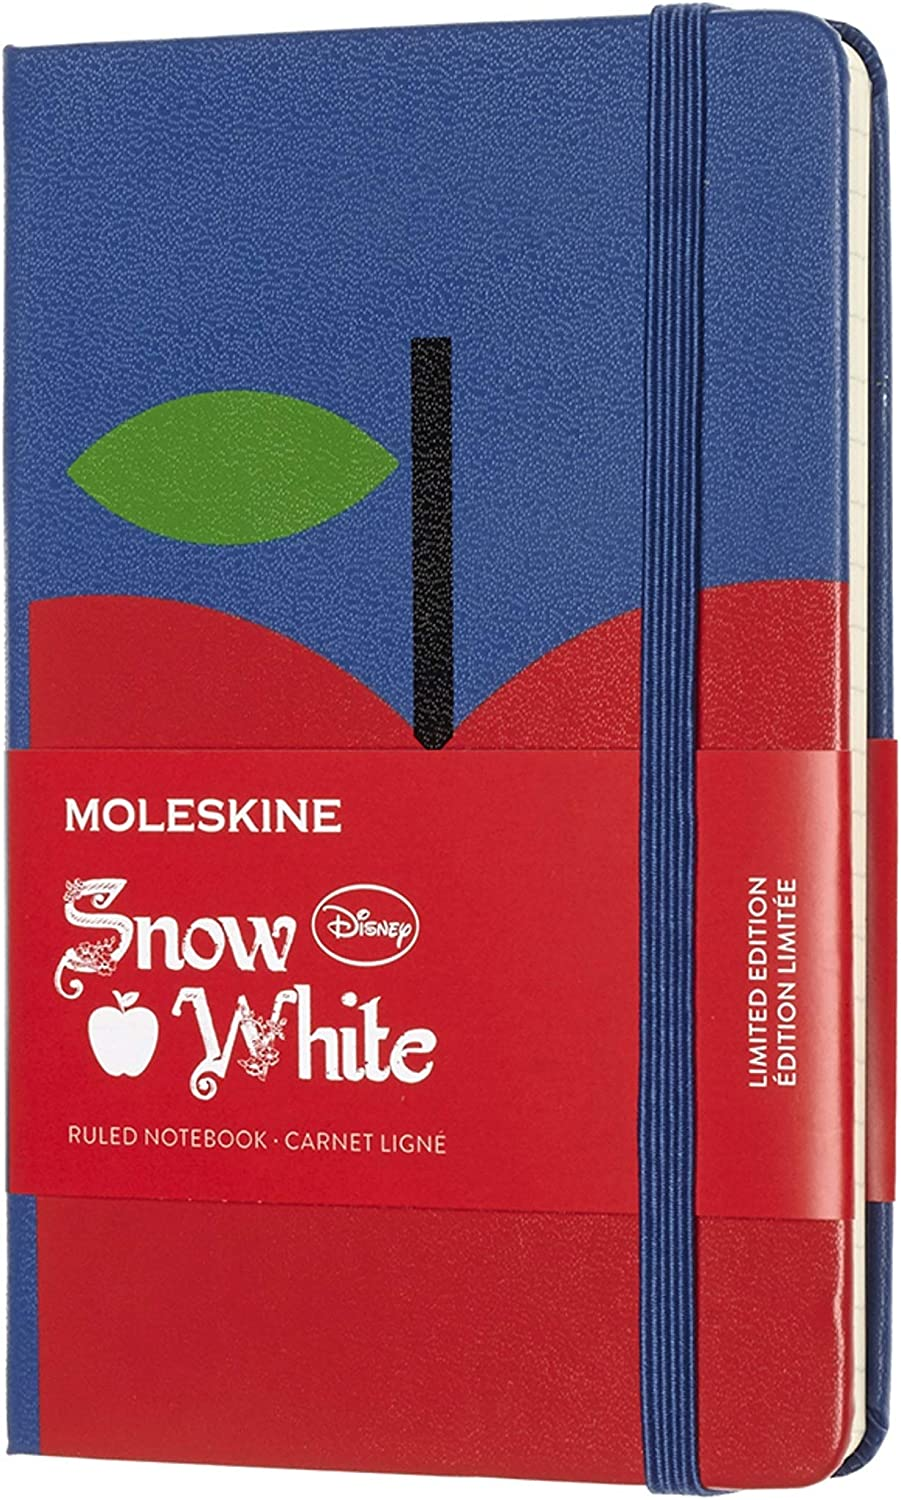 Moleskine Limited Edition Snow White Notebook, Hard Cover, Pocket (3.5